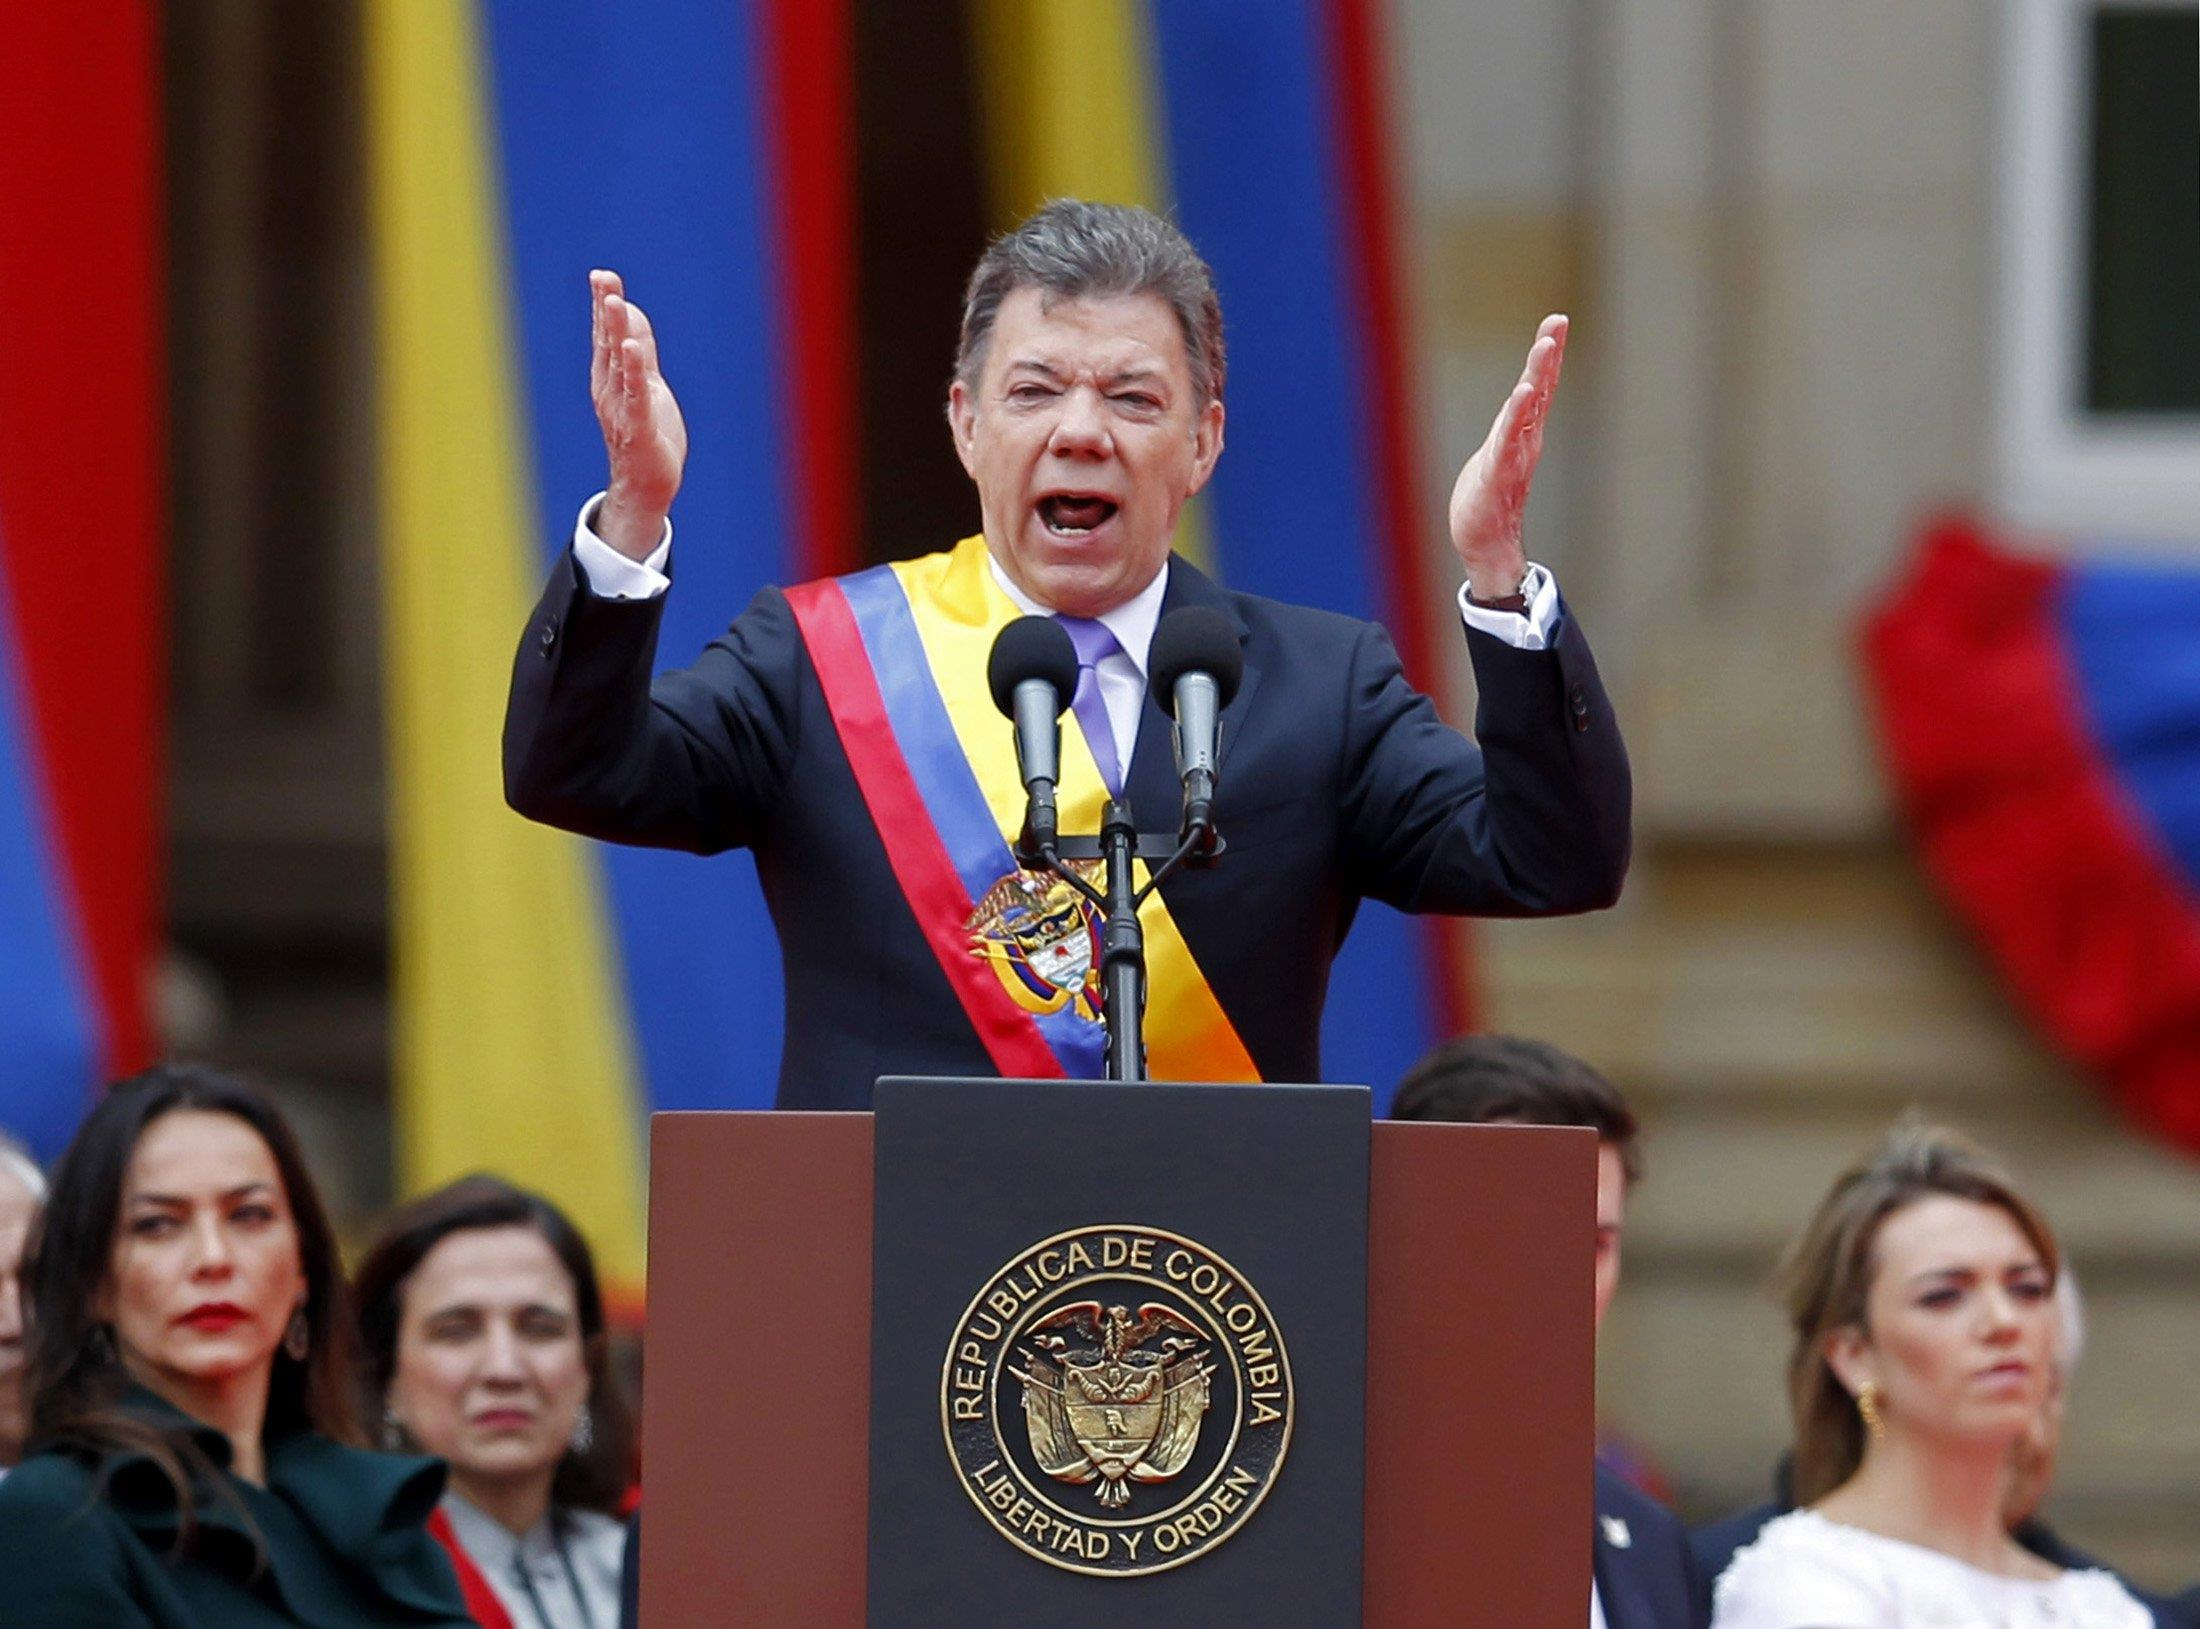 Image: Colombia's President Santos gestures during a speech at an inaguration ceremony to commemorate his second term in Bogota